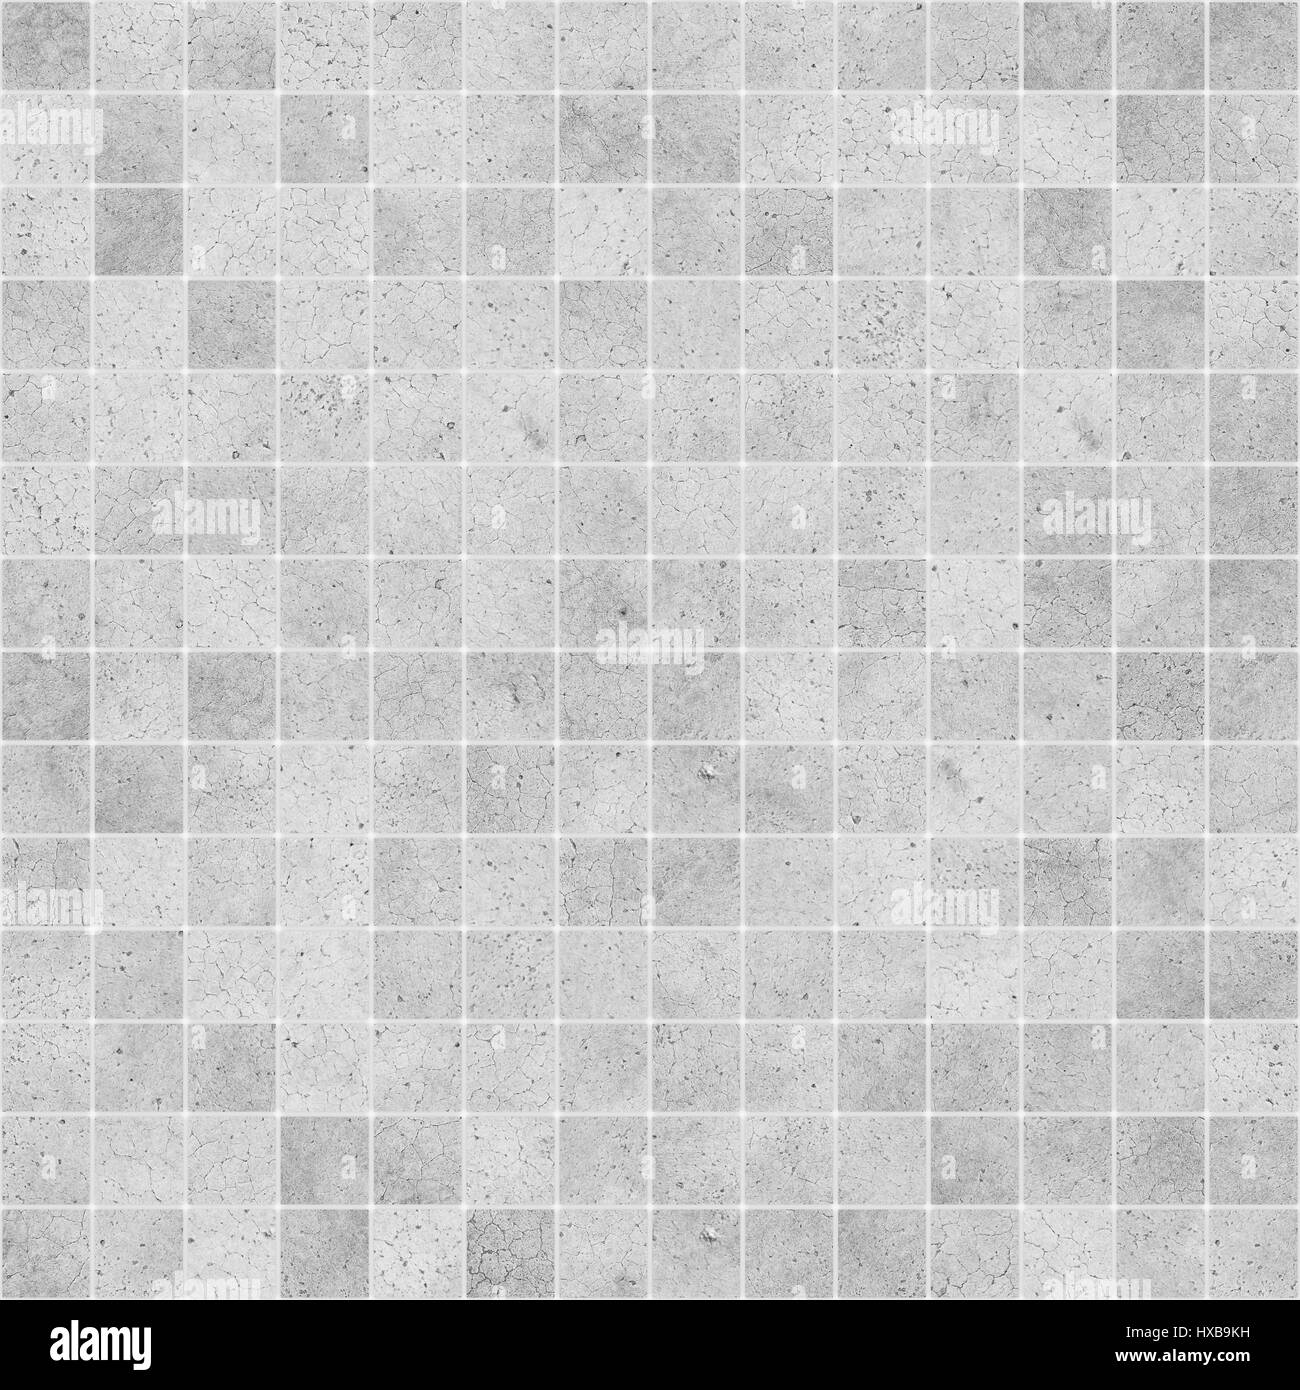 Concrete Mosaic Tile Seamless Texture Stock Photo